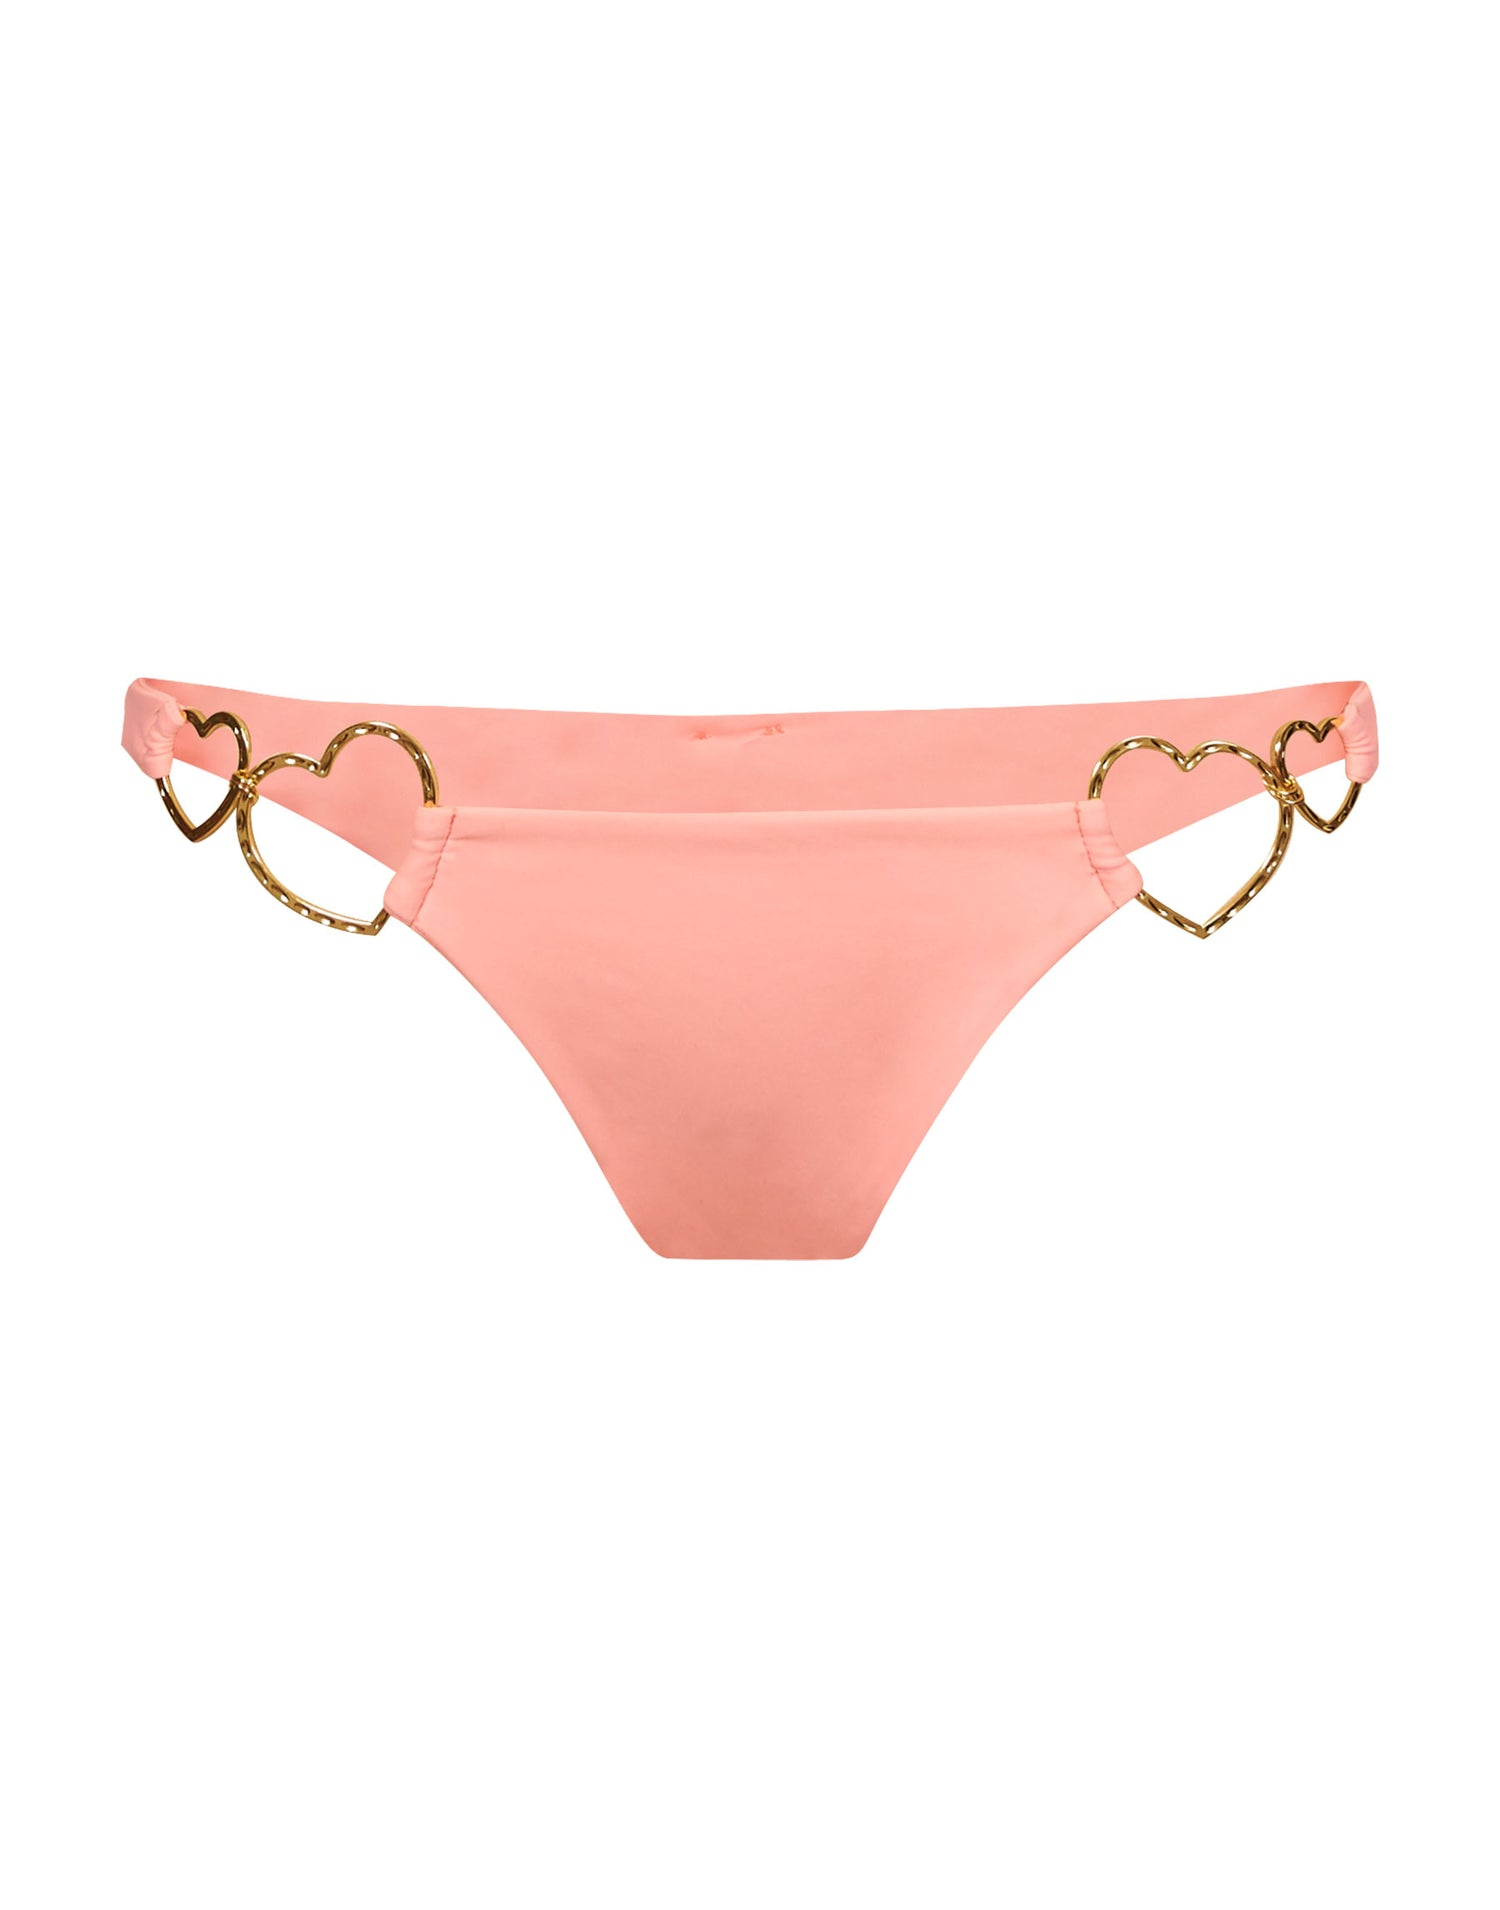 Nadia Love Skimpy Bikini Bottom in Cherry Blossom with Gold Heart Hardware - product view